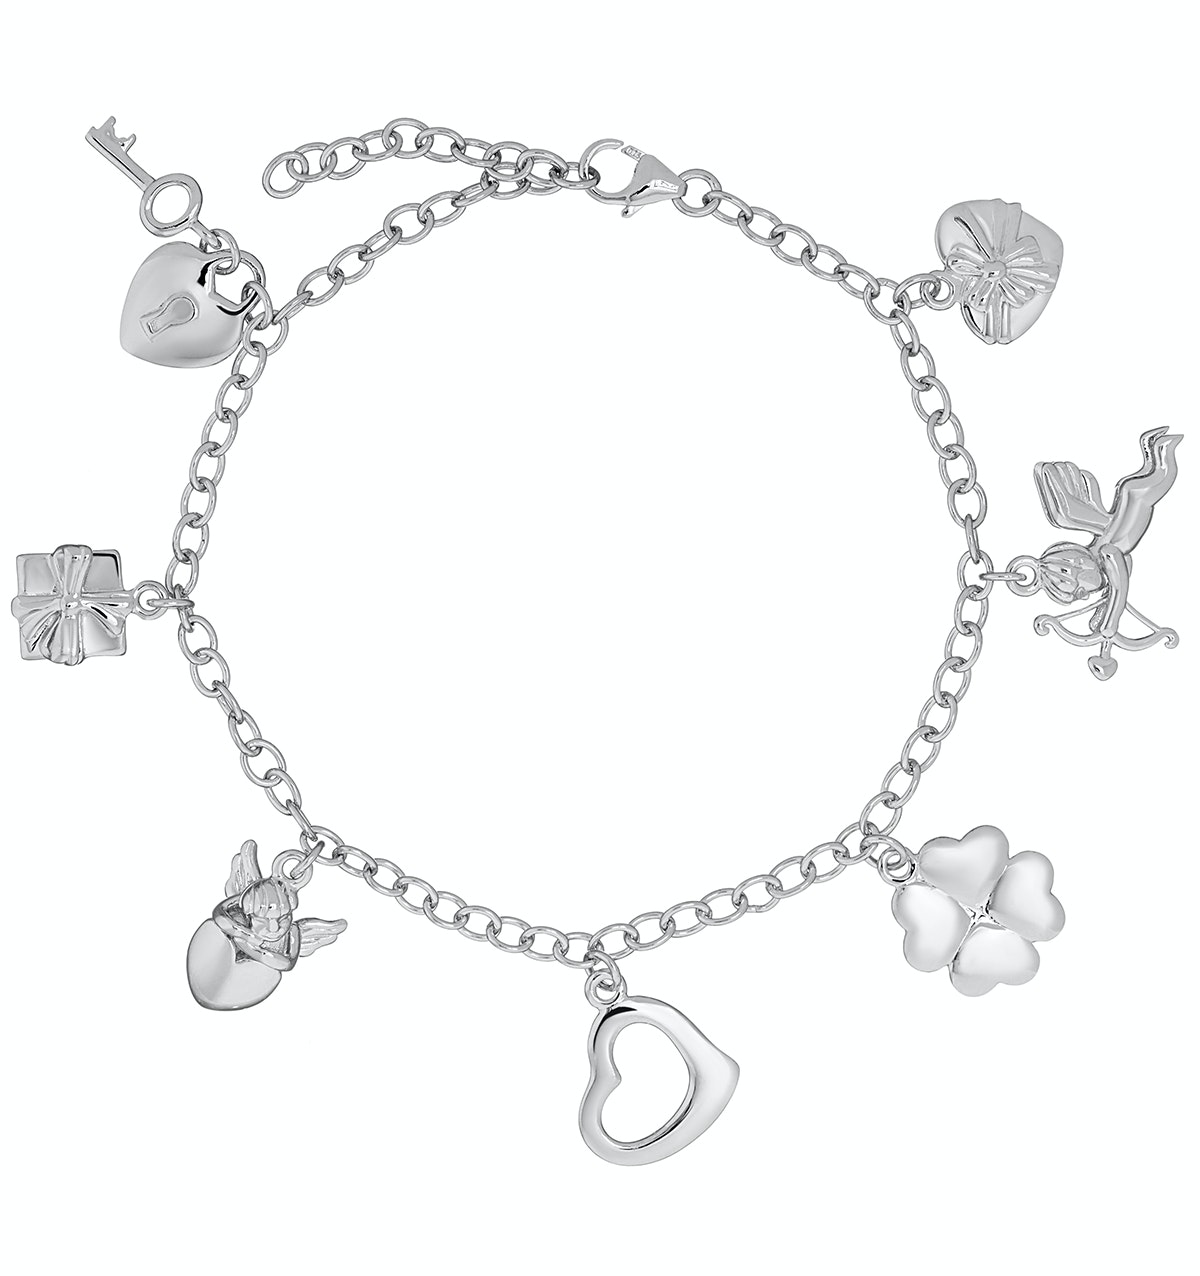 Silver Lucky In Love Key and Heart Charm Bracelet - Tesoro Collection